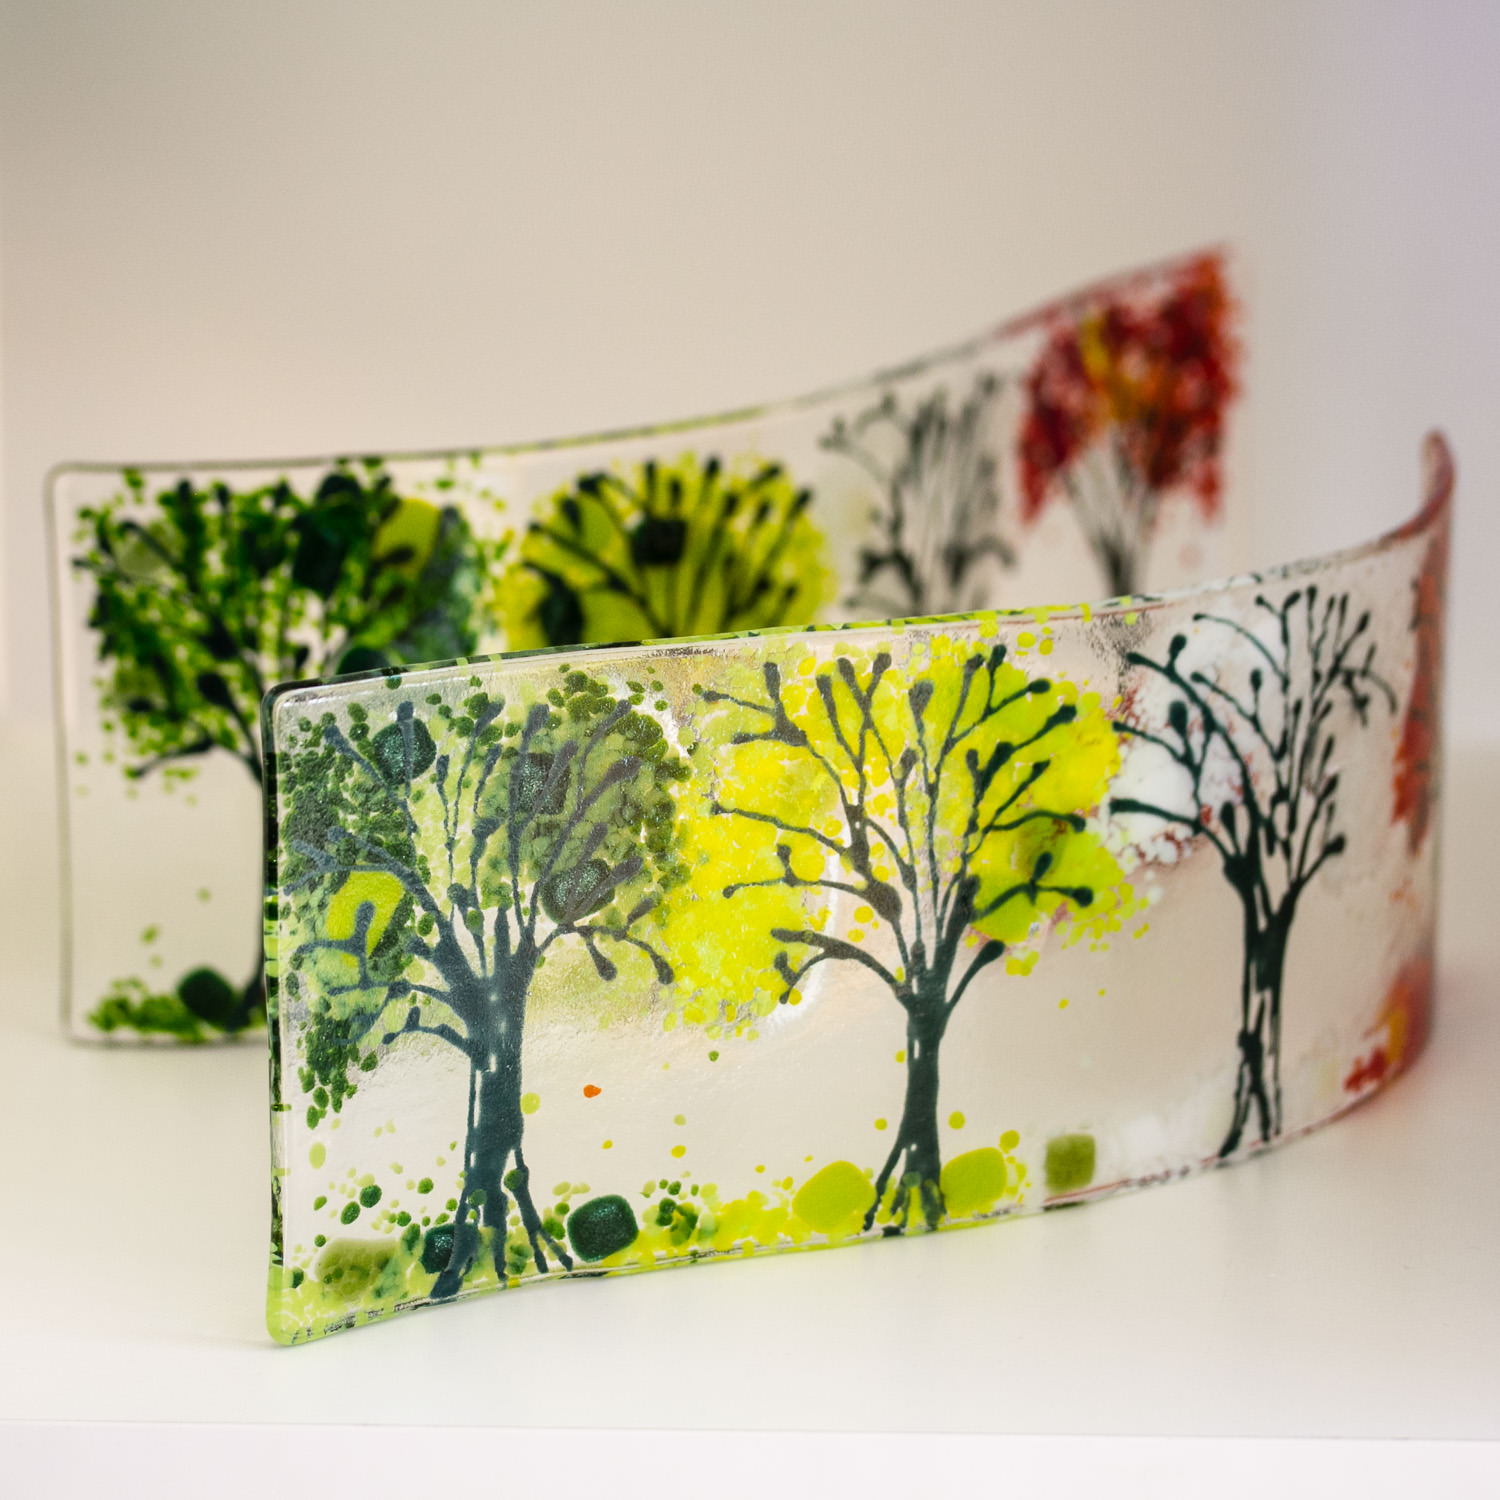 Seasons Waved Glass  - Fused Glass Art by Helen Grierson